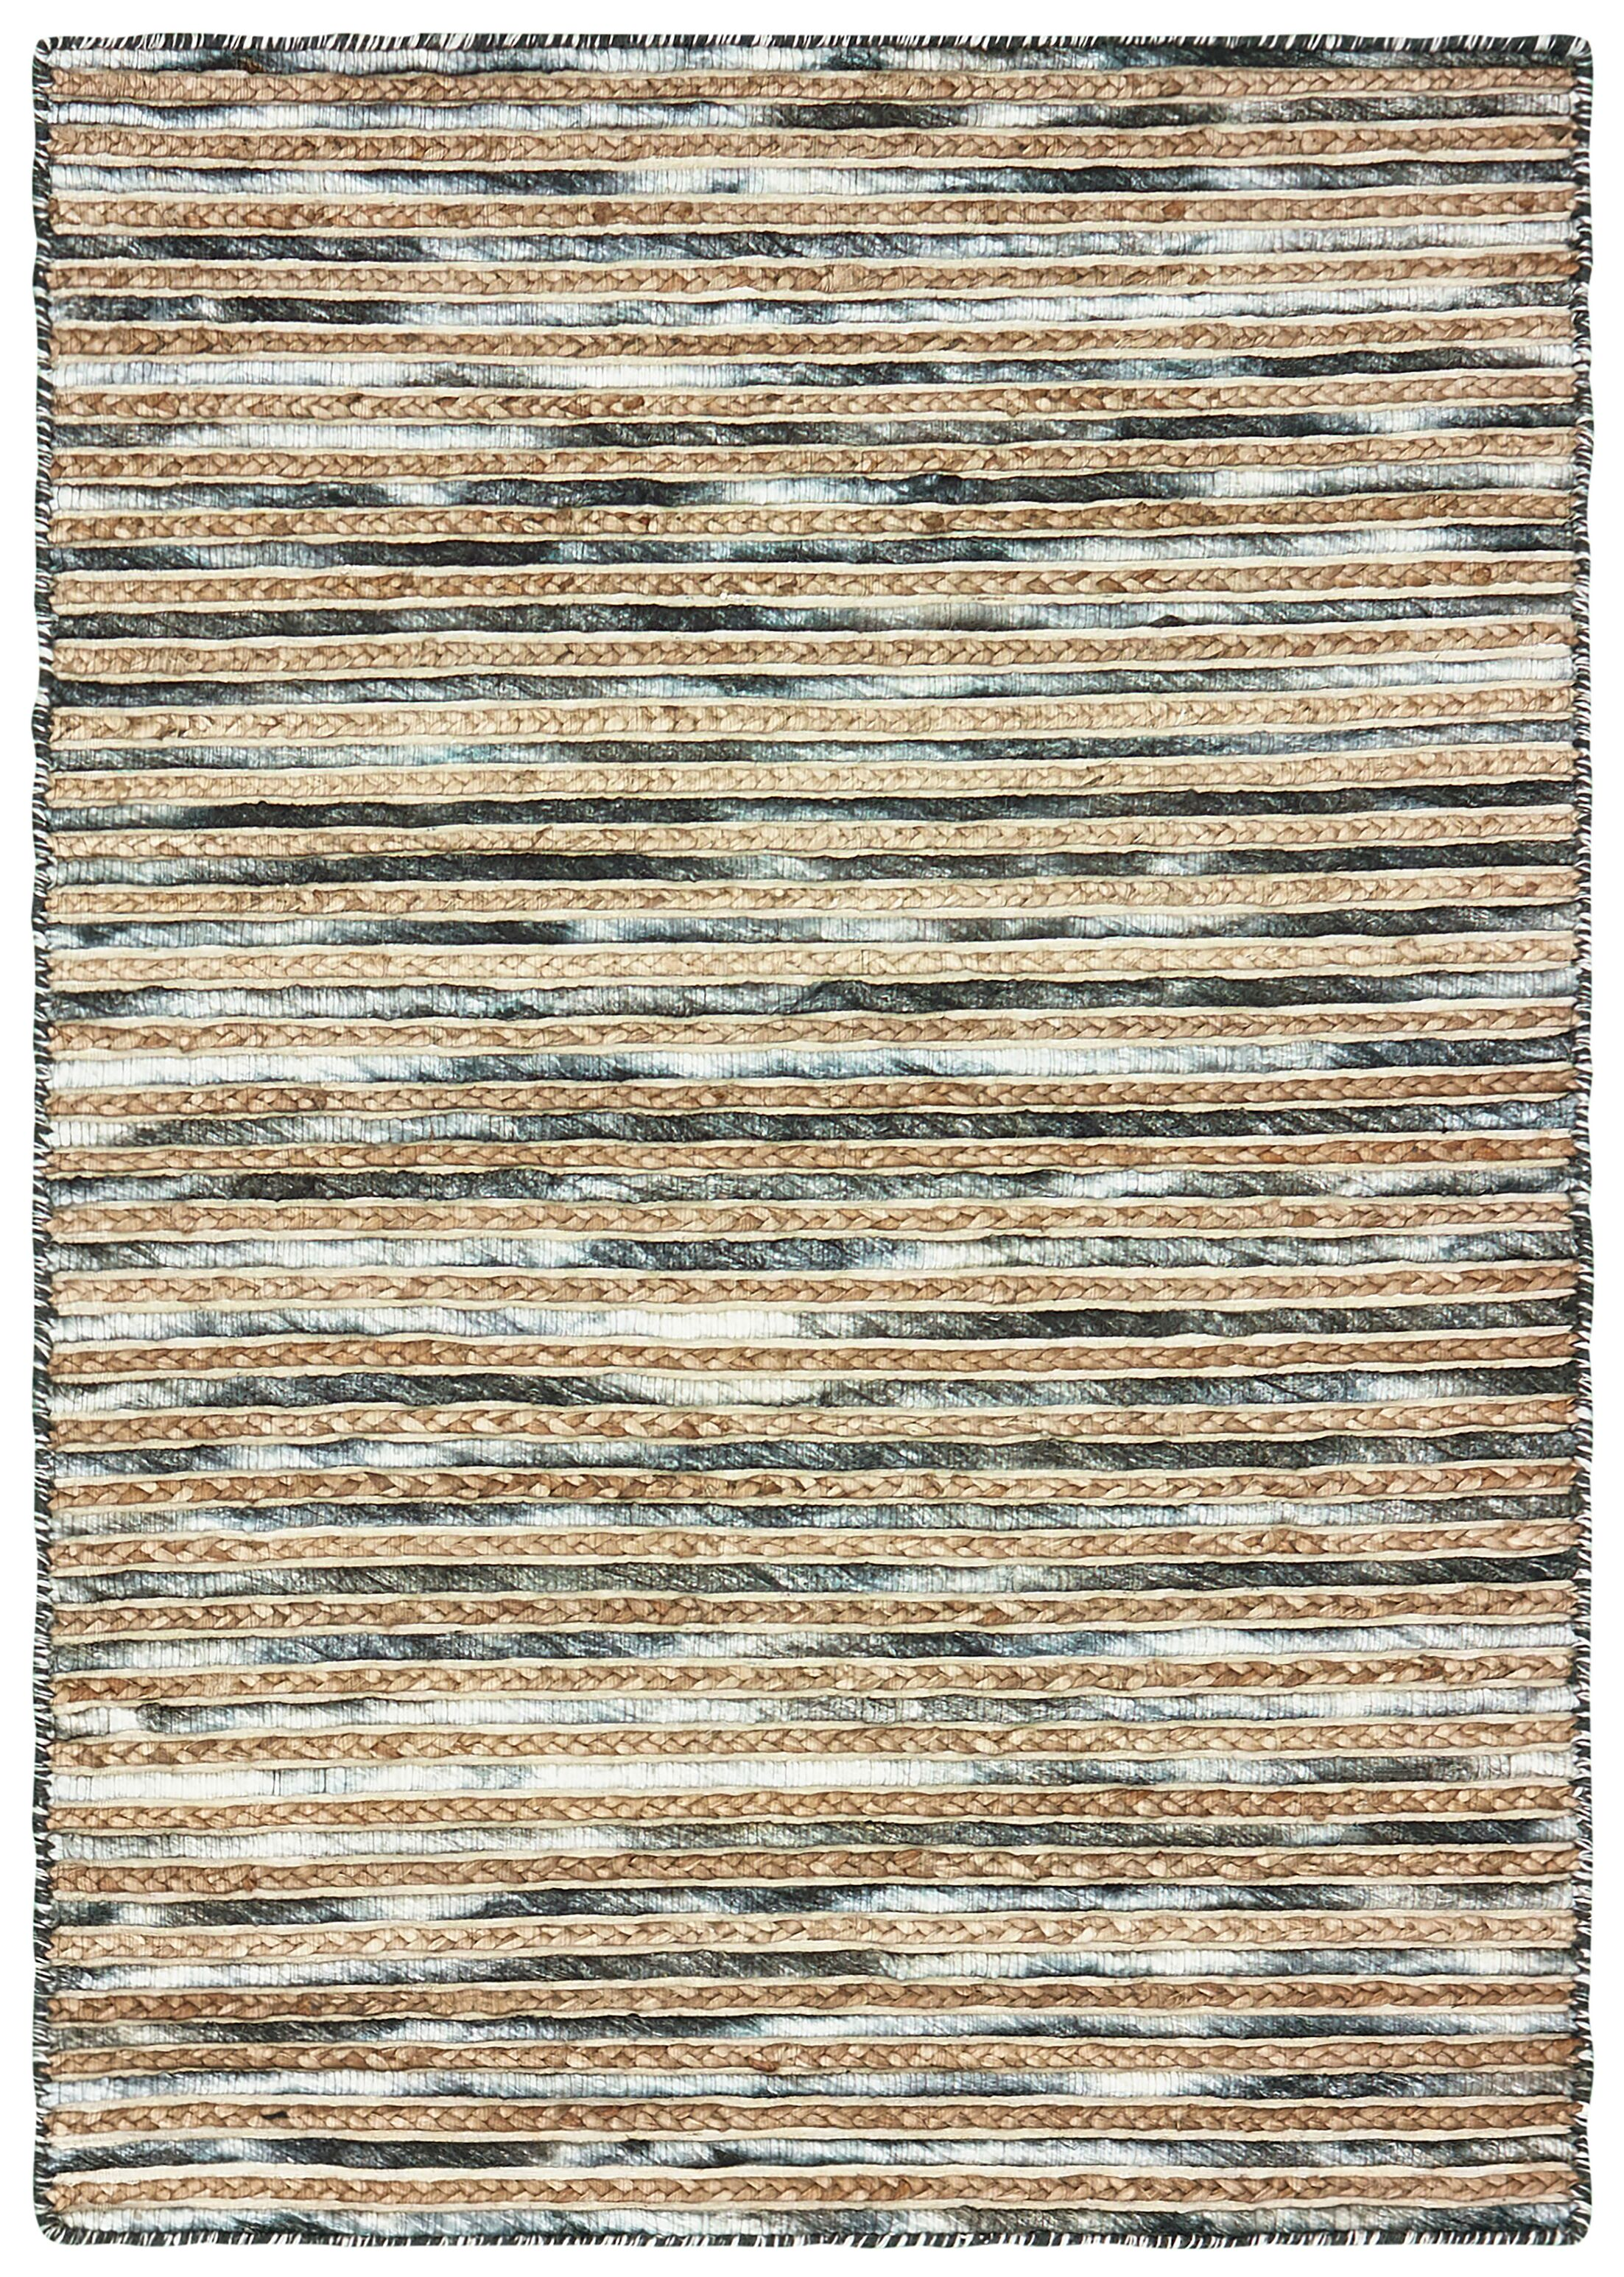 Vitagliano Striped Hand-Tufted Charcoal/Beige Area Rug Rug Size: Rectangle 5' x 7'9